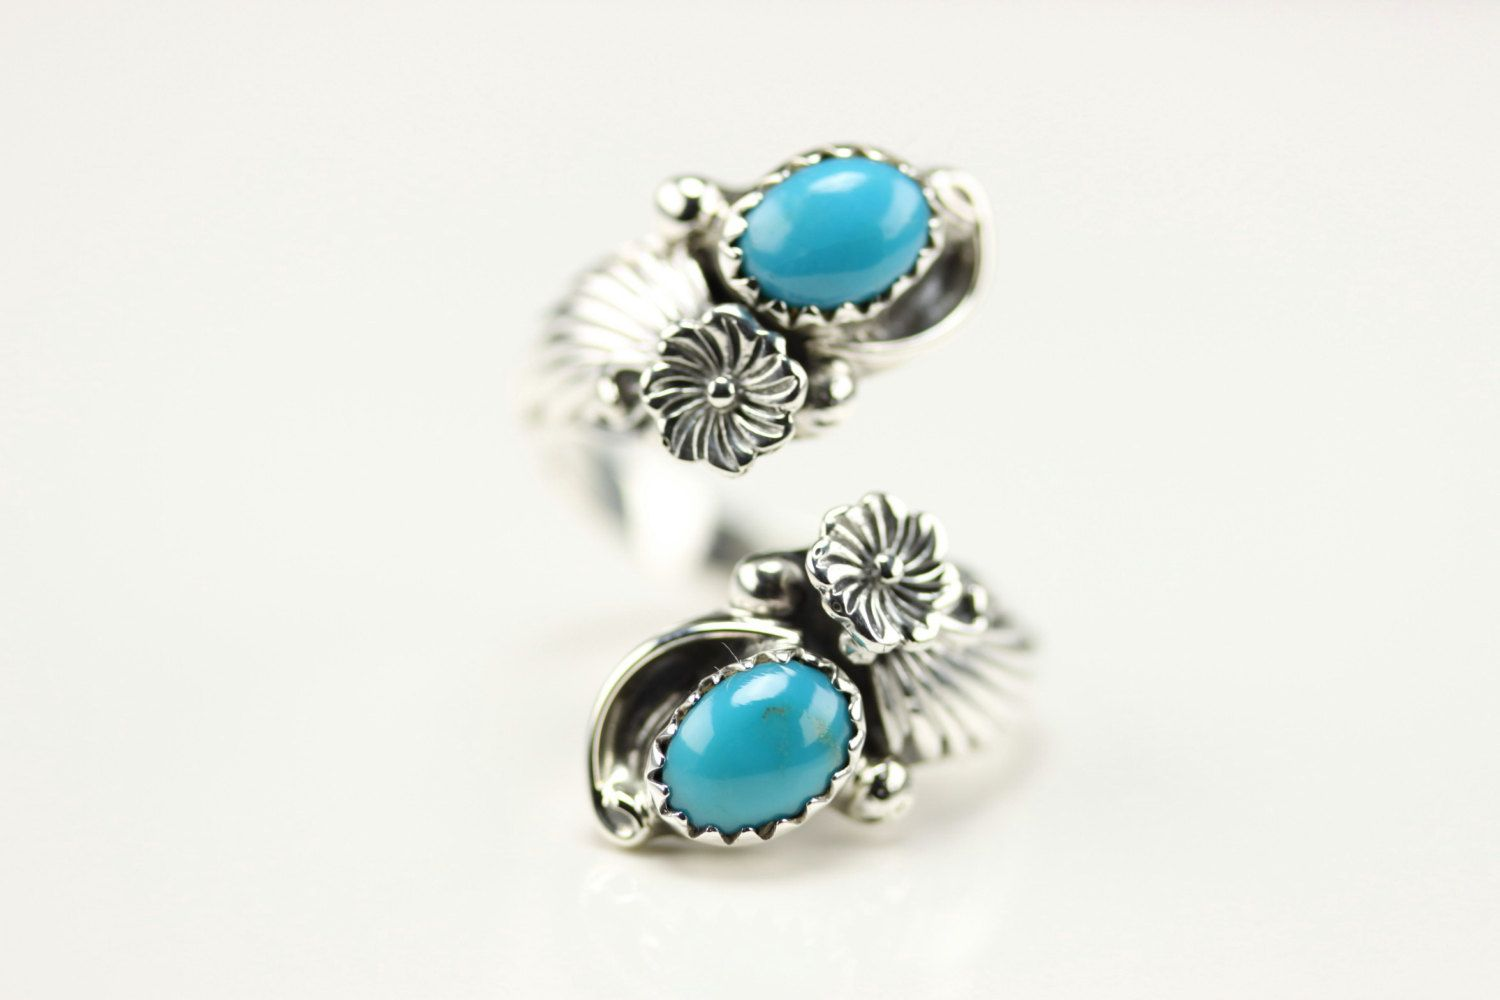 Sterling Silver Navajo Turquoise Adjustable Ring Size 5.5 By Etta Belin by LoudCrowTrading on Etsy